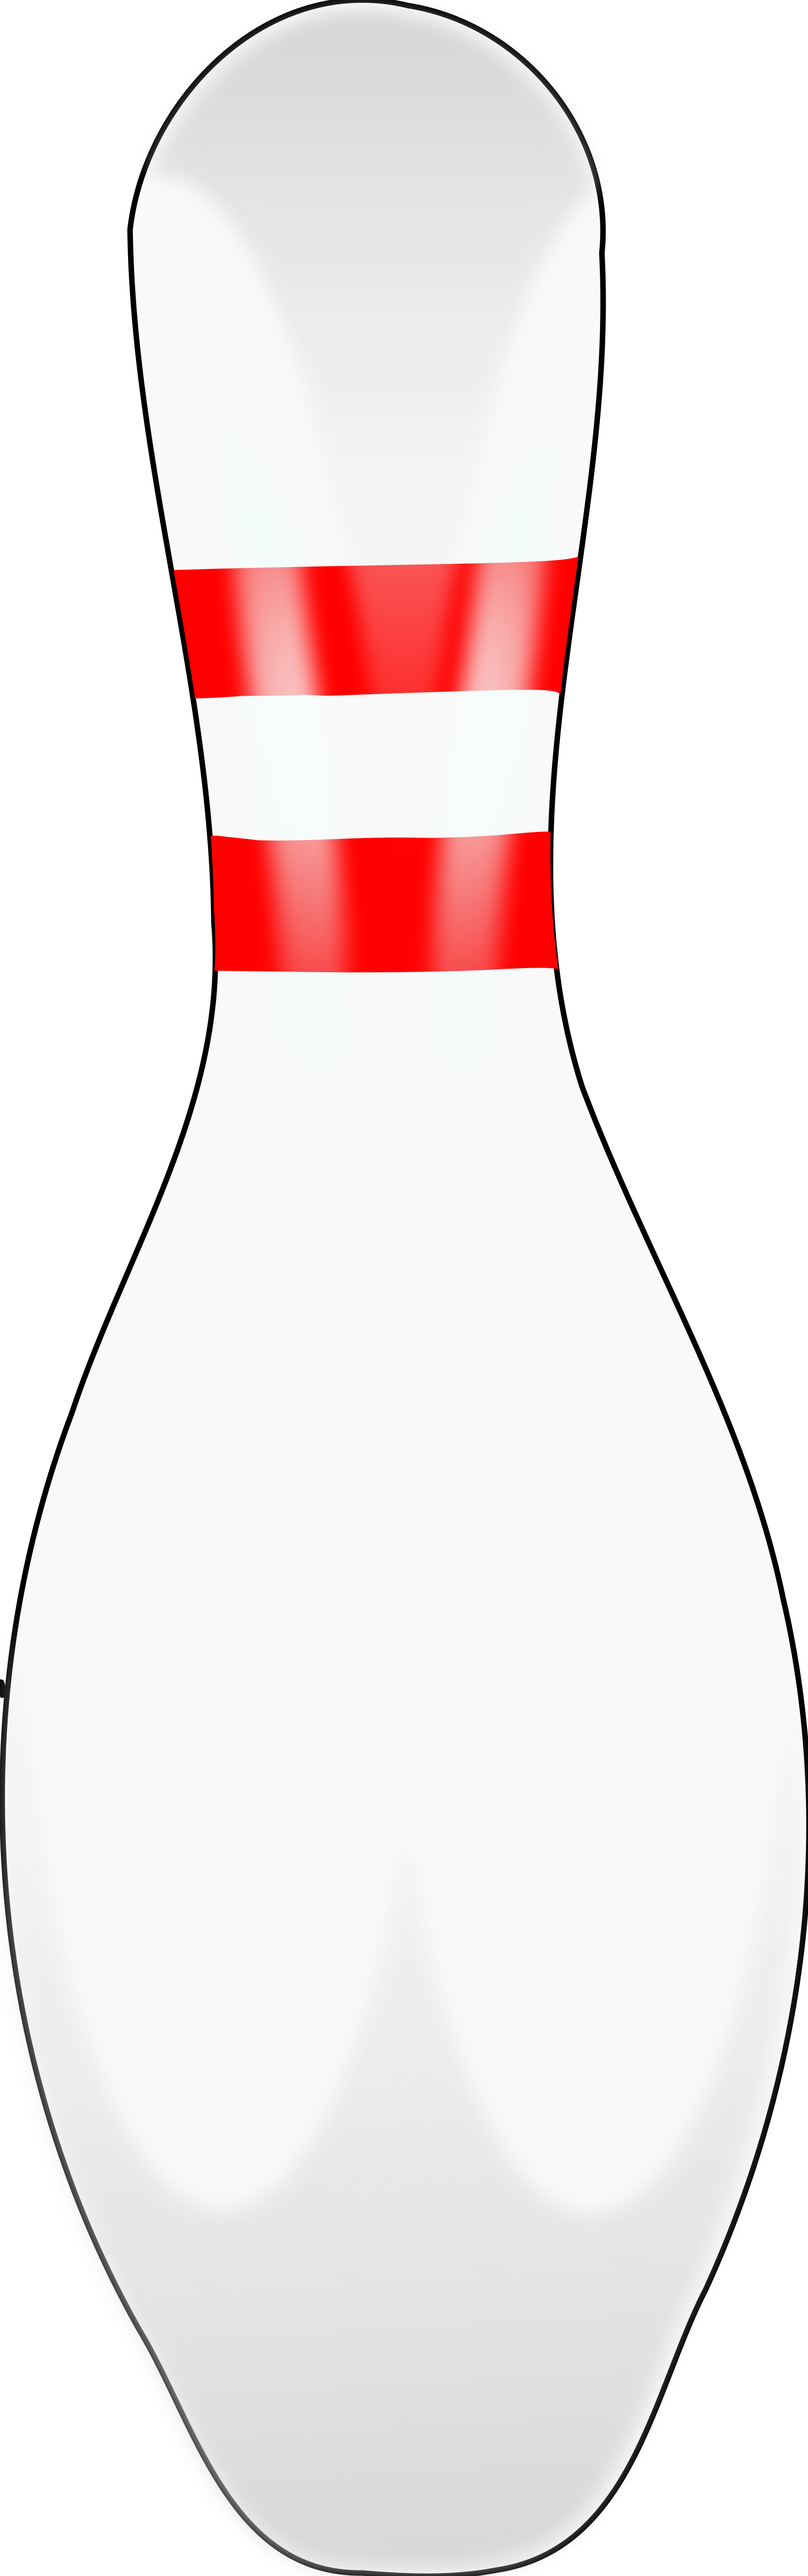 Bowling cross pins clipart clipart royalty free library Bowling Pins Clipart - clipart clipart royalty free library